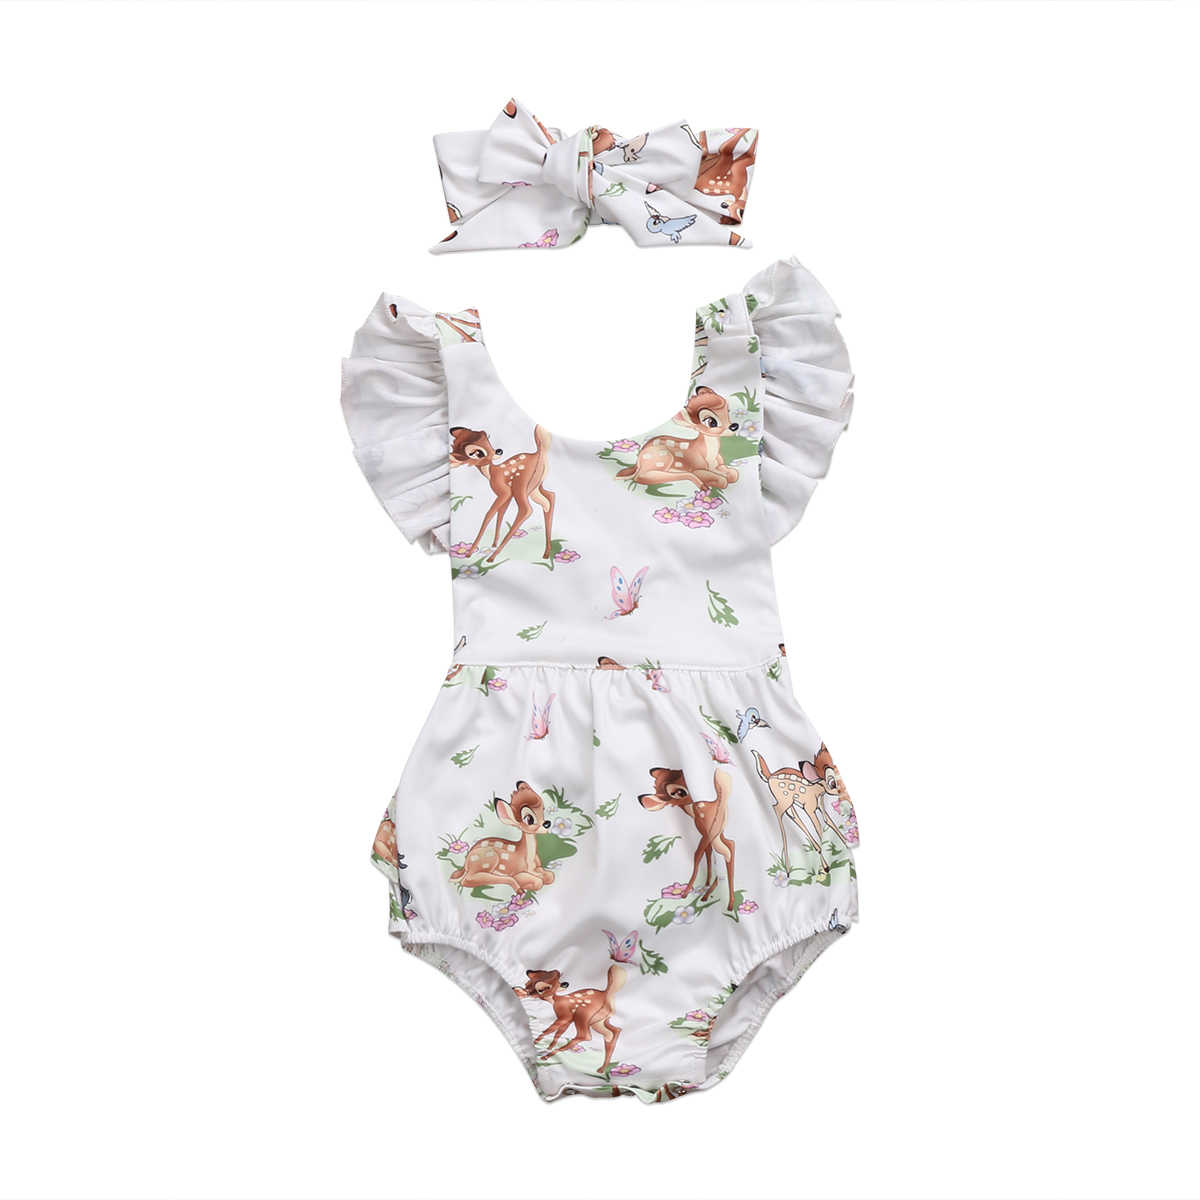 e0861264b28 Detail Feedback Questions about Baby Clothing Newborn Toddler Infant Baby  Girls Ruffles Deer Romper Back Cross Jumpsuit Clothes Sunsuit Outfits on ...